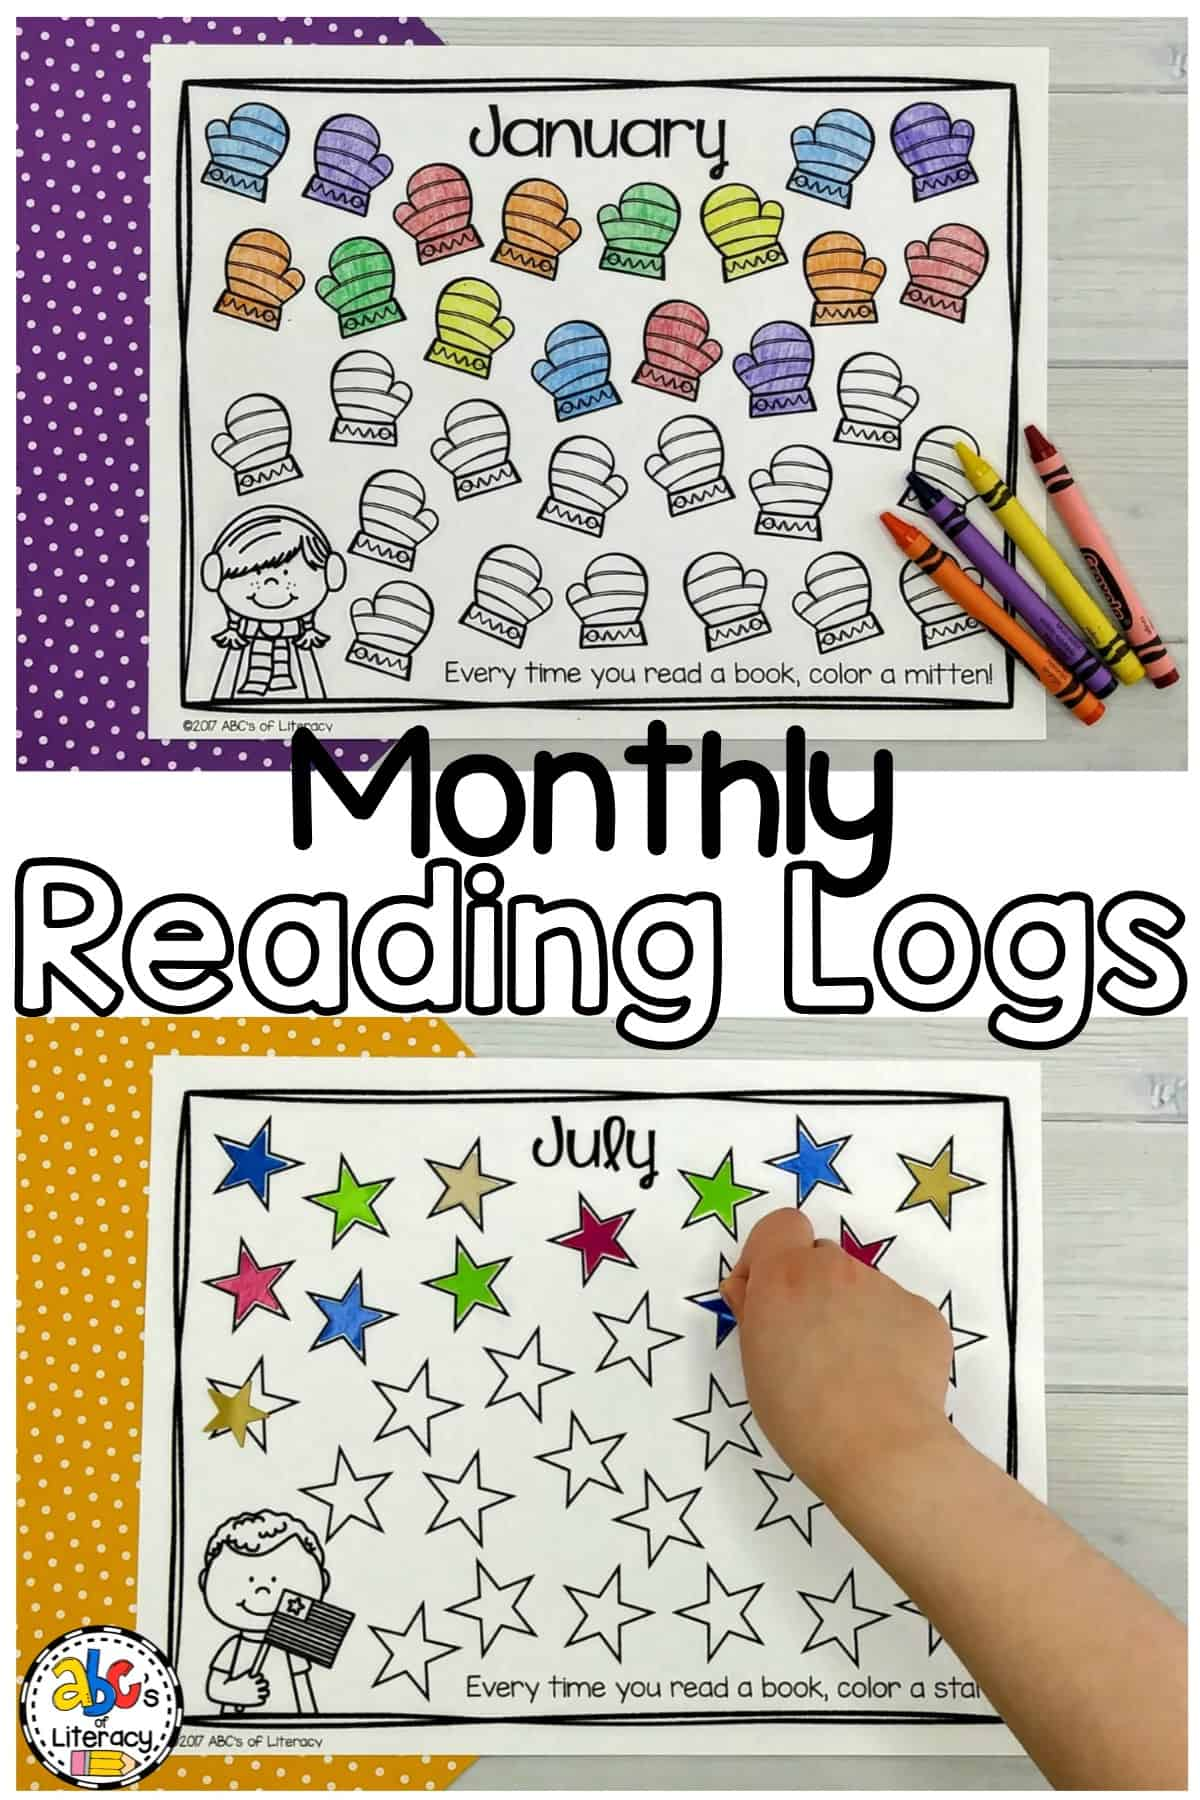 These Monthly Reading Logs will making reading at home fun for your students as they take charge of tracking the number of books that they read every month.